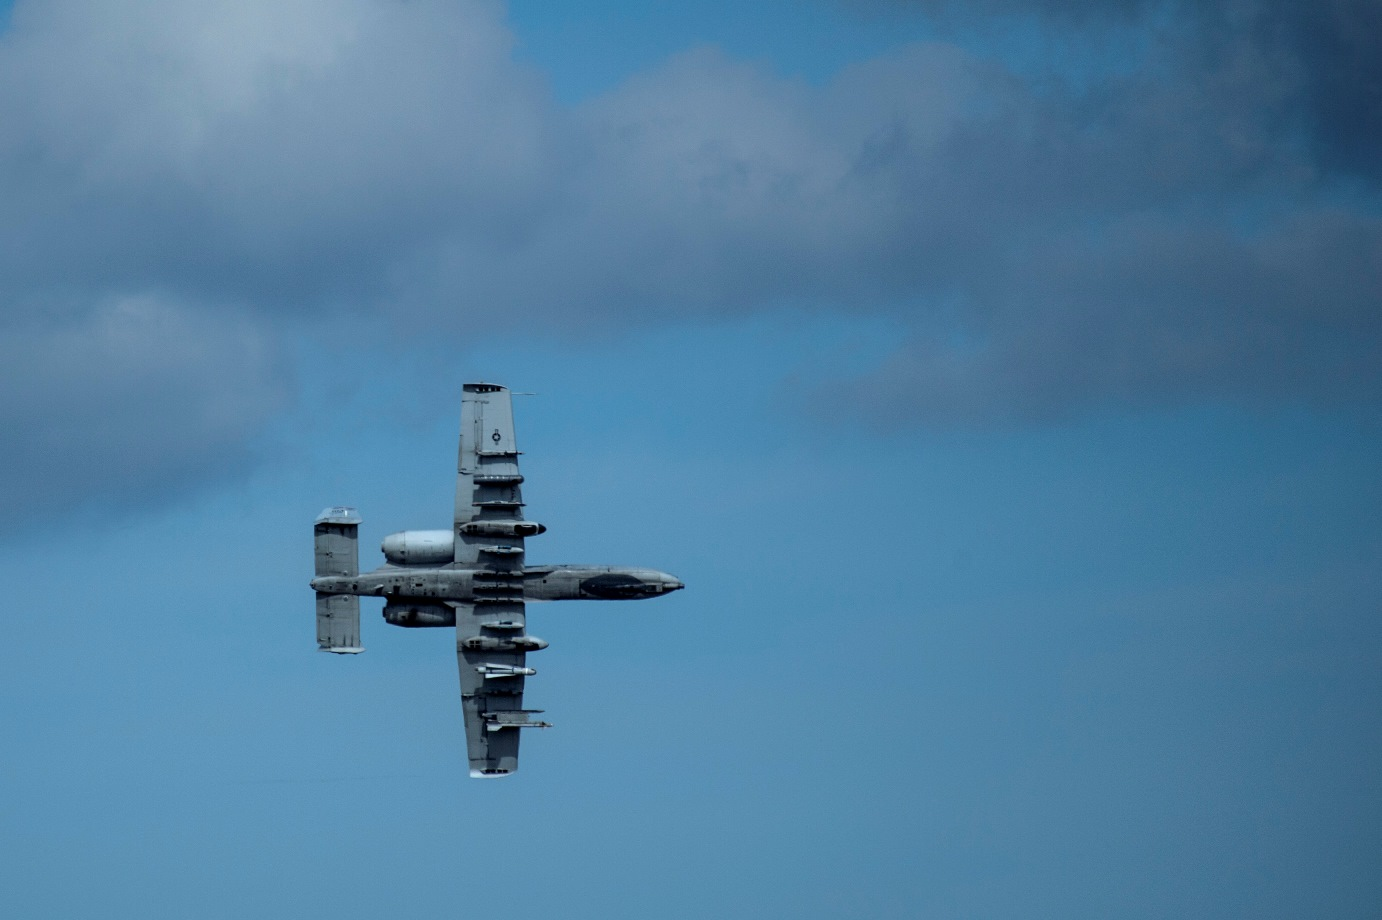 An A-10 Thunderbolt II attack aircraft flies over the airfield at Ämari Air Base, Estonia during Exercise Hedgehog May 7, 2015, . The A-10 supports Air Force missions around the world as part of the U.S. Air Force's current inventory of strike platforms, including the F-15E Strike Eagle and the F-16 Fighting Falcon fighter aircraft. (U.S. Air Force photo by Senior Airman Rusty Frank/Released)